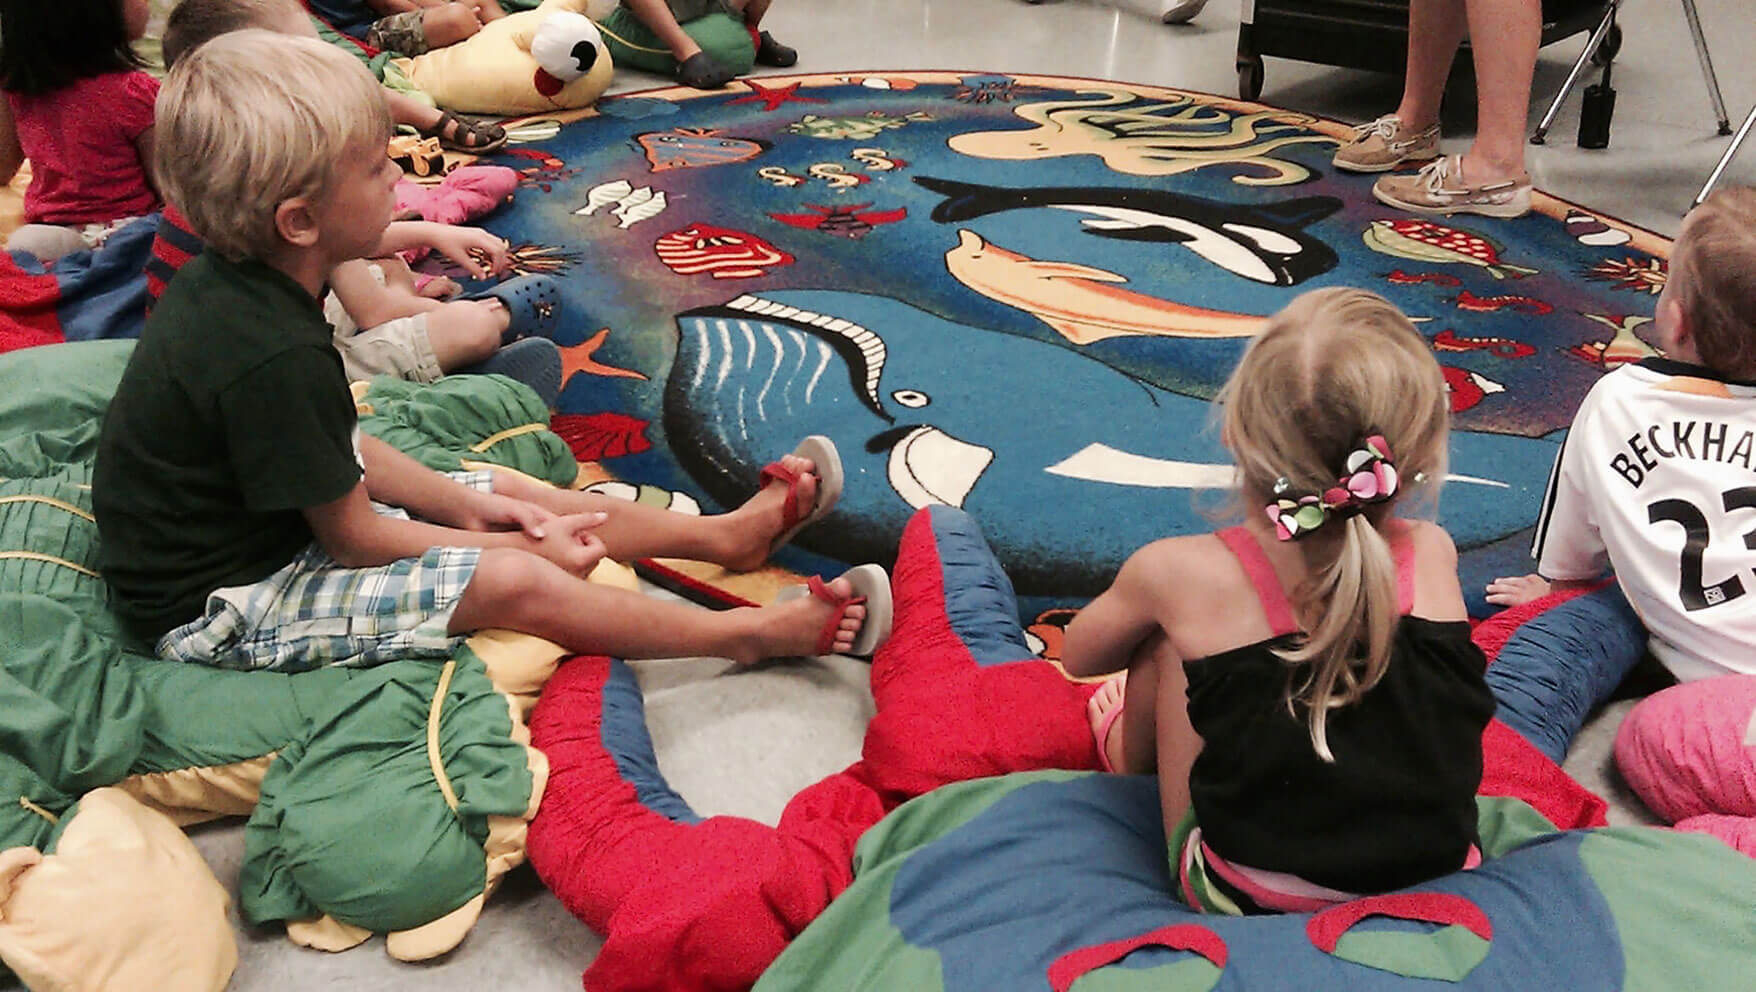 5 Great Tips for Getting a Group of Children to Settle in for Sunday School Story Time